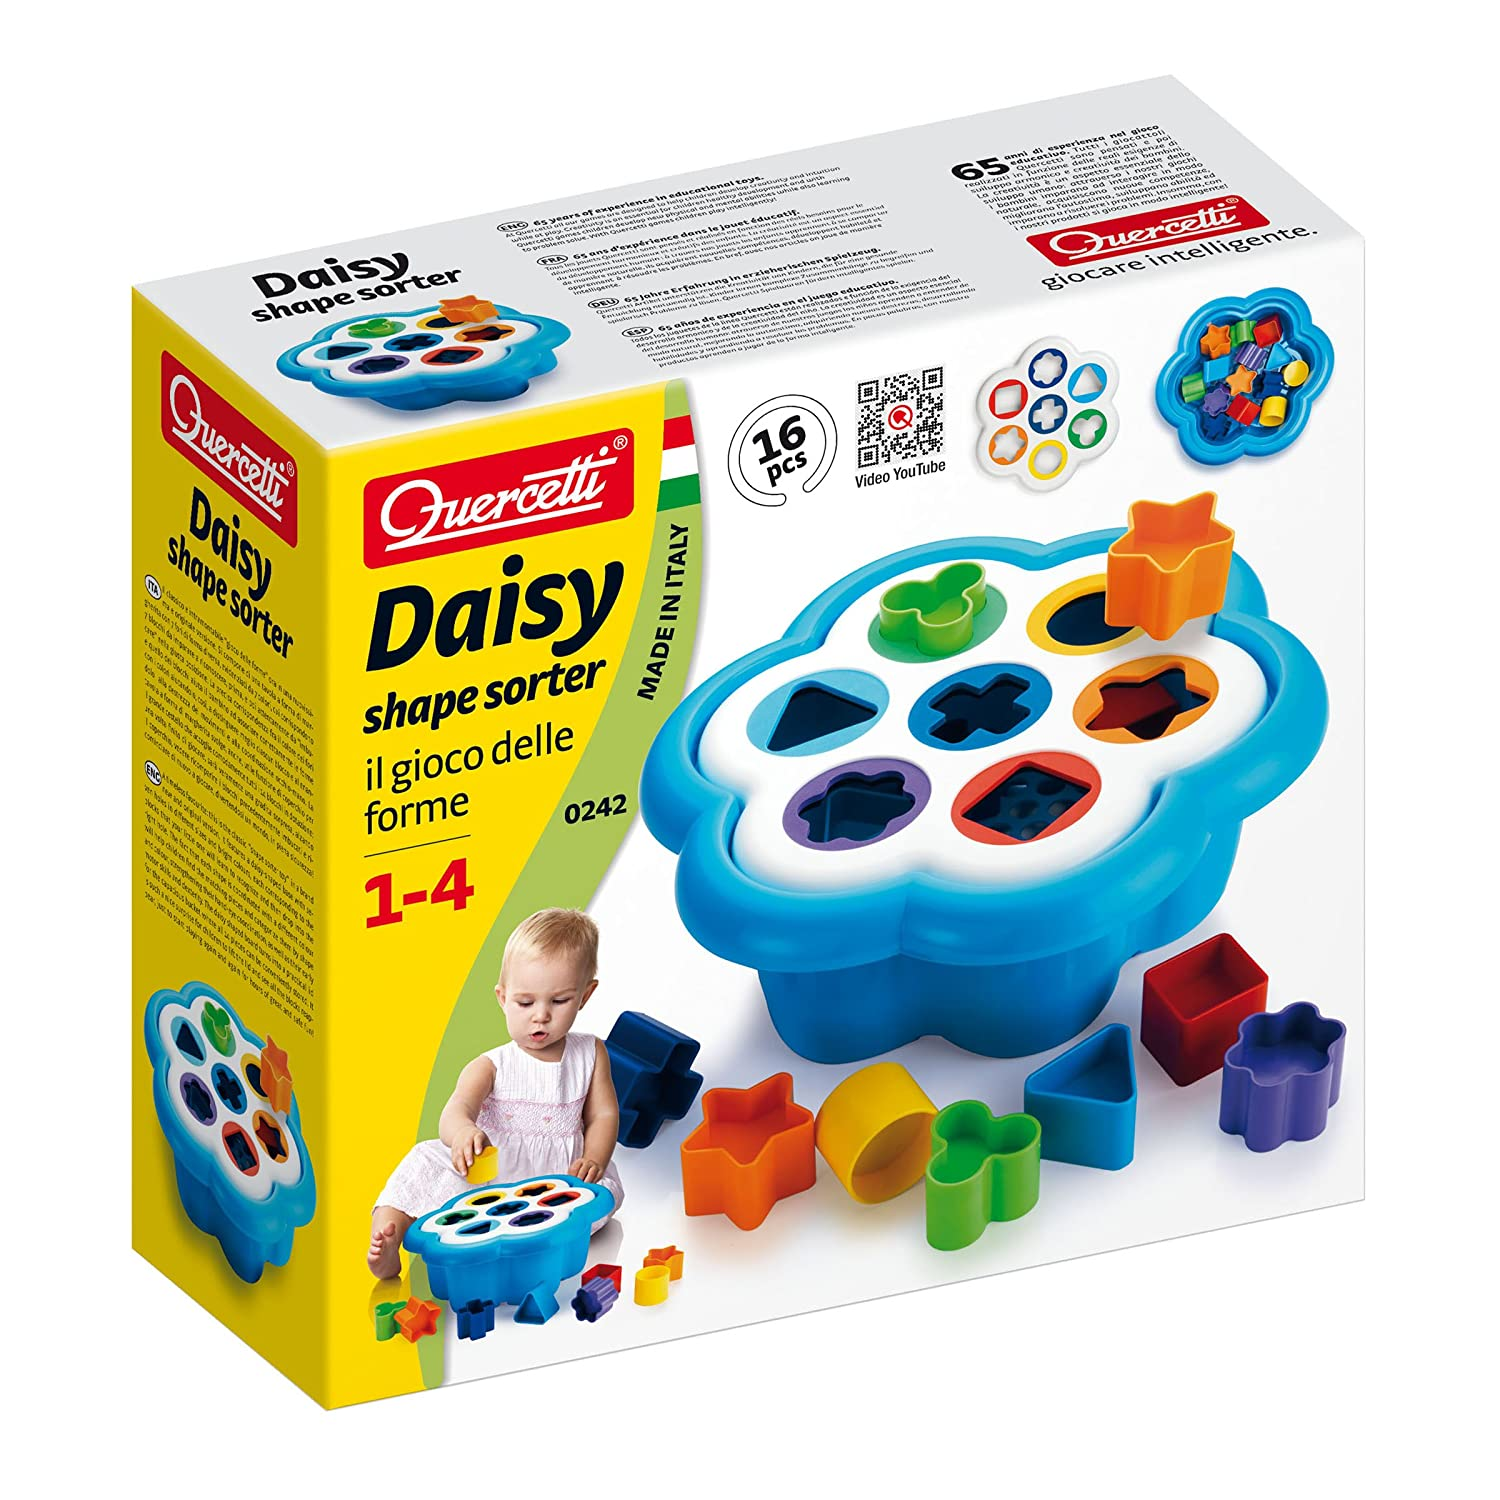 Quercetti Daisy Shape Sorter Classic 16 Piece Shape and Color Sorting Toy Made in Italy